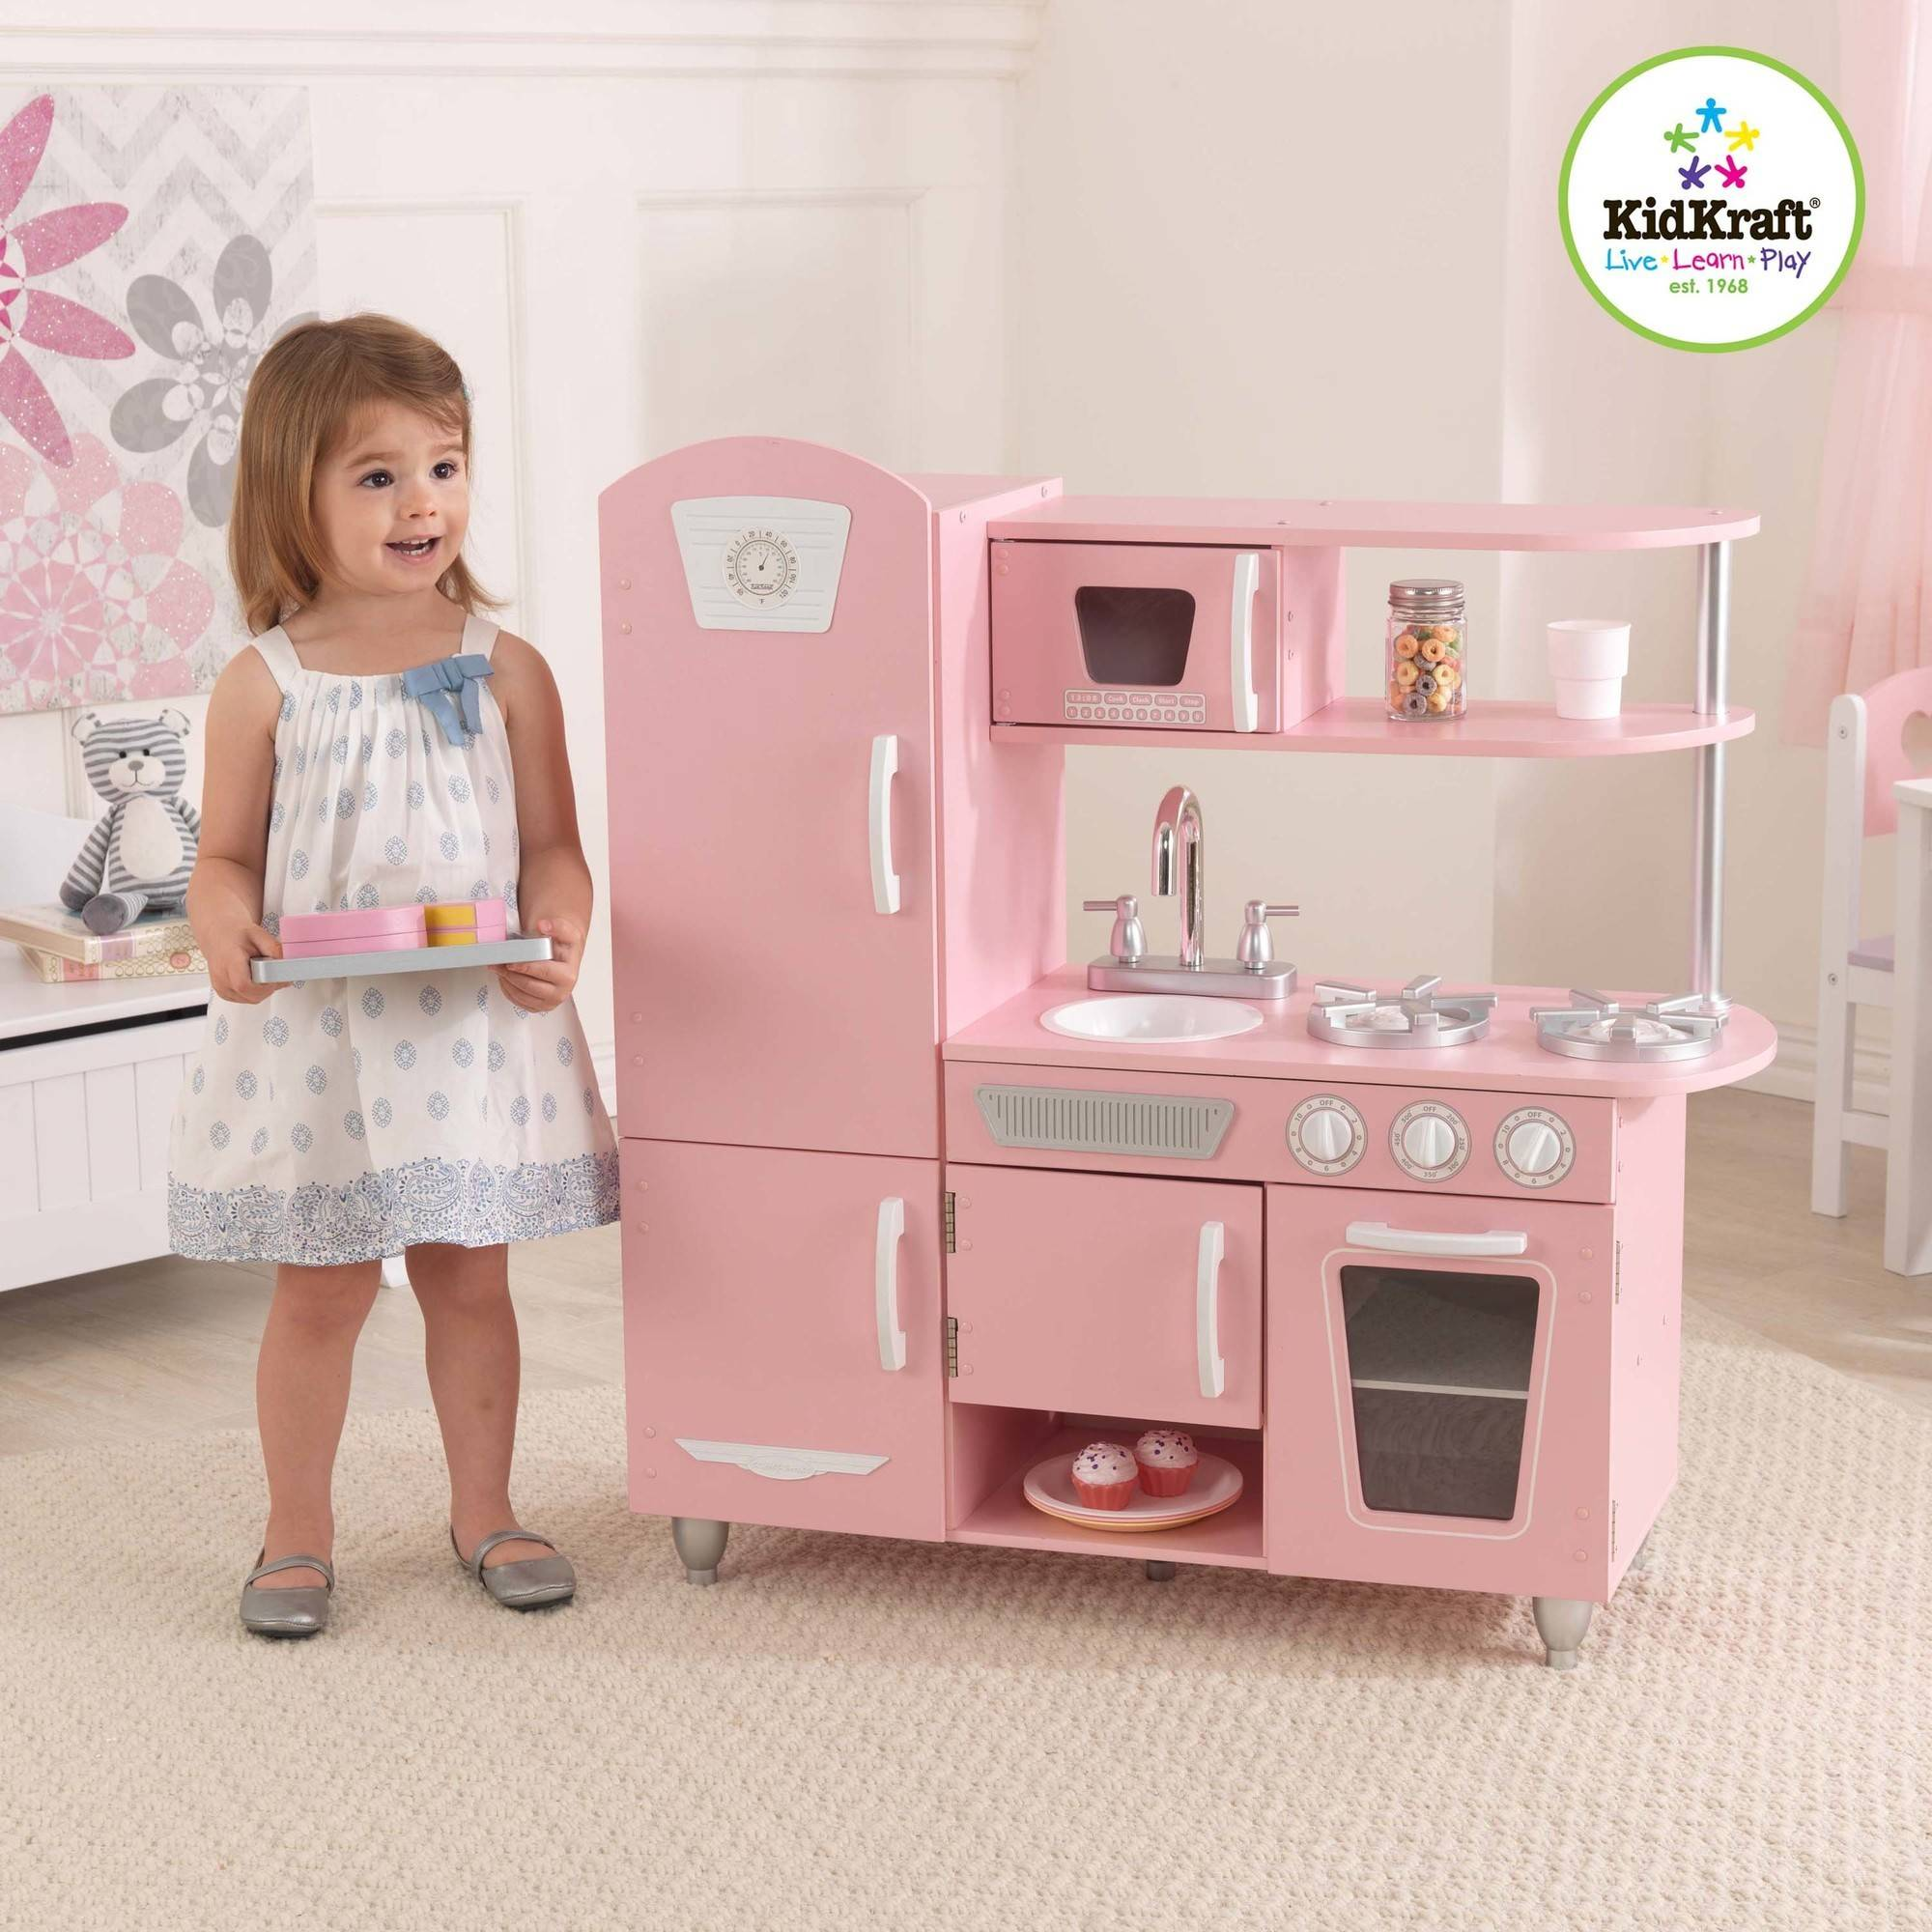 KidKraft Espresso Toddler Play Kitchen with Metal Accessory Set ...